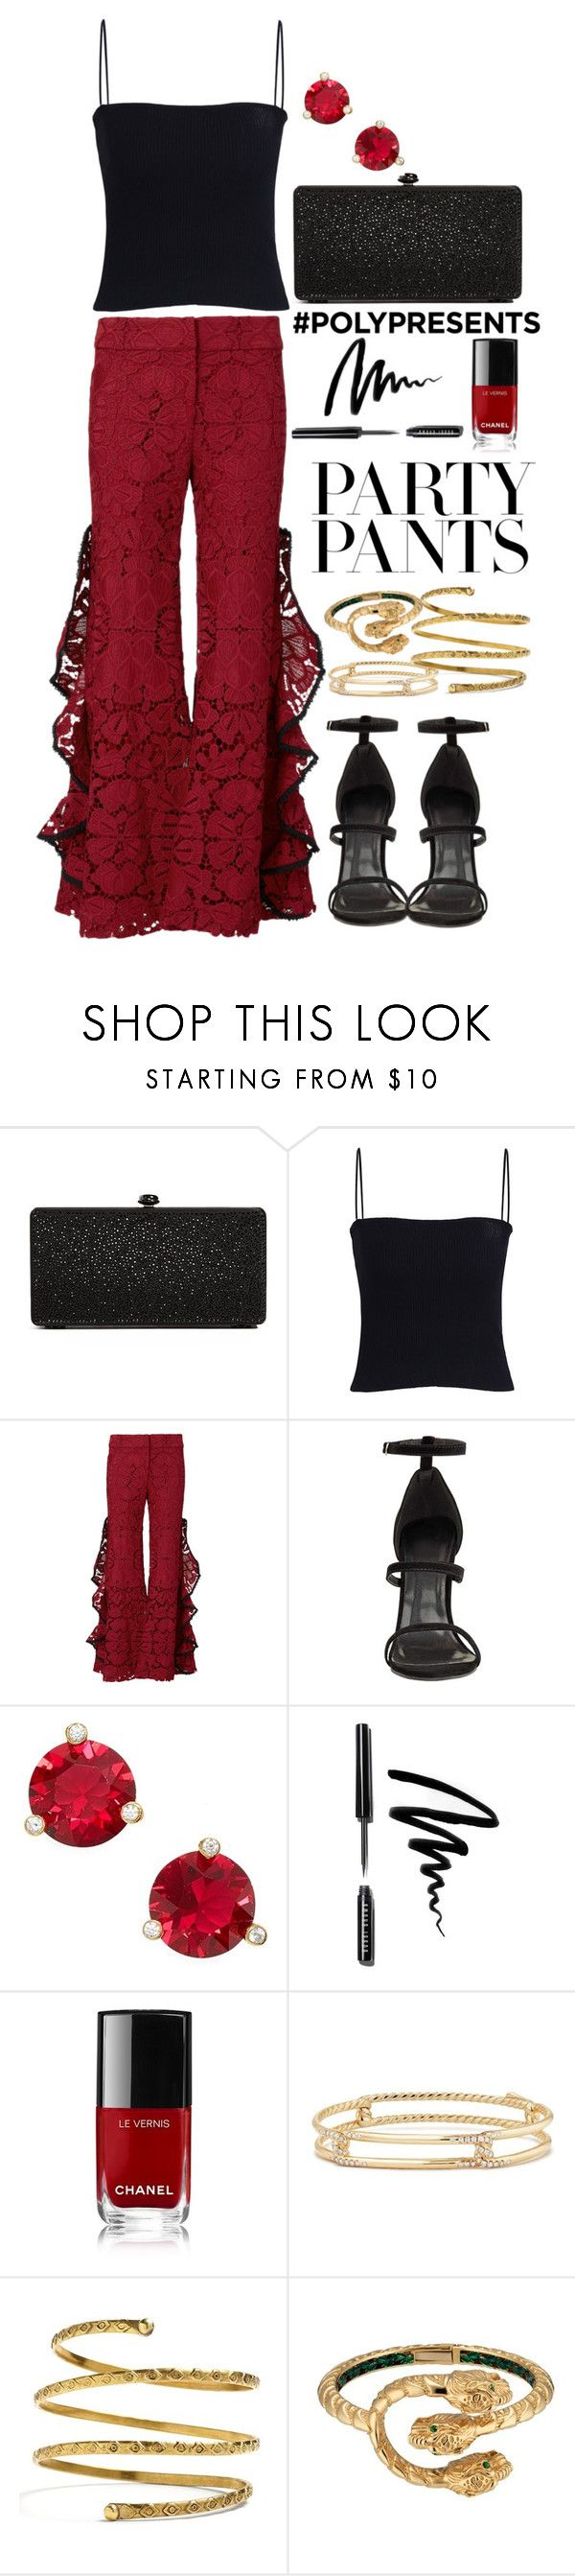 """Polyvore Presents: Lace Fancy Pants"" by nikka-phillips ❤ liked on Polyvore featuring Deux Lux, Adam Selman, Kate Spade, Bobbi Brown Cosmetics, Chanel, David Yurman, Venus, Gucci, party and zara"